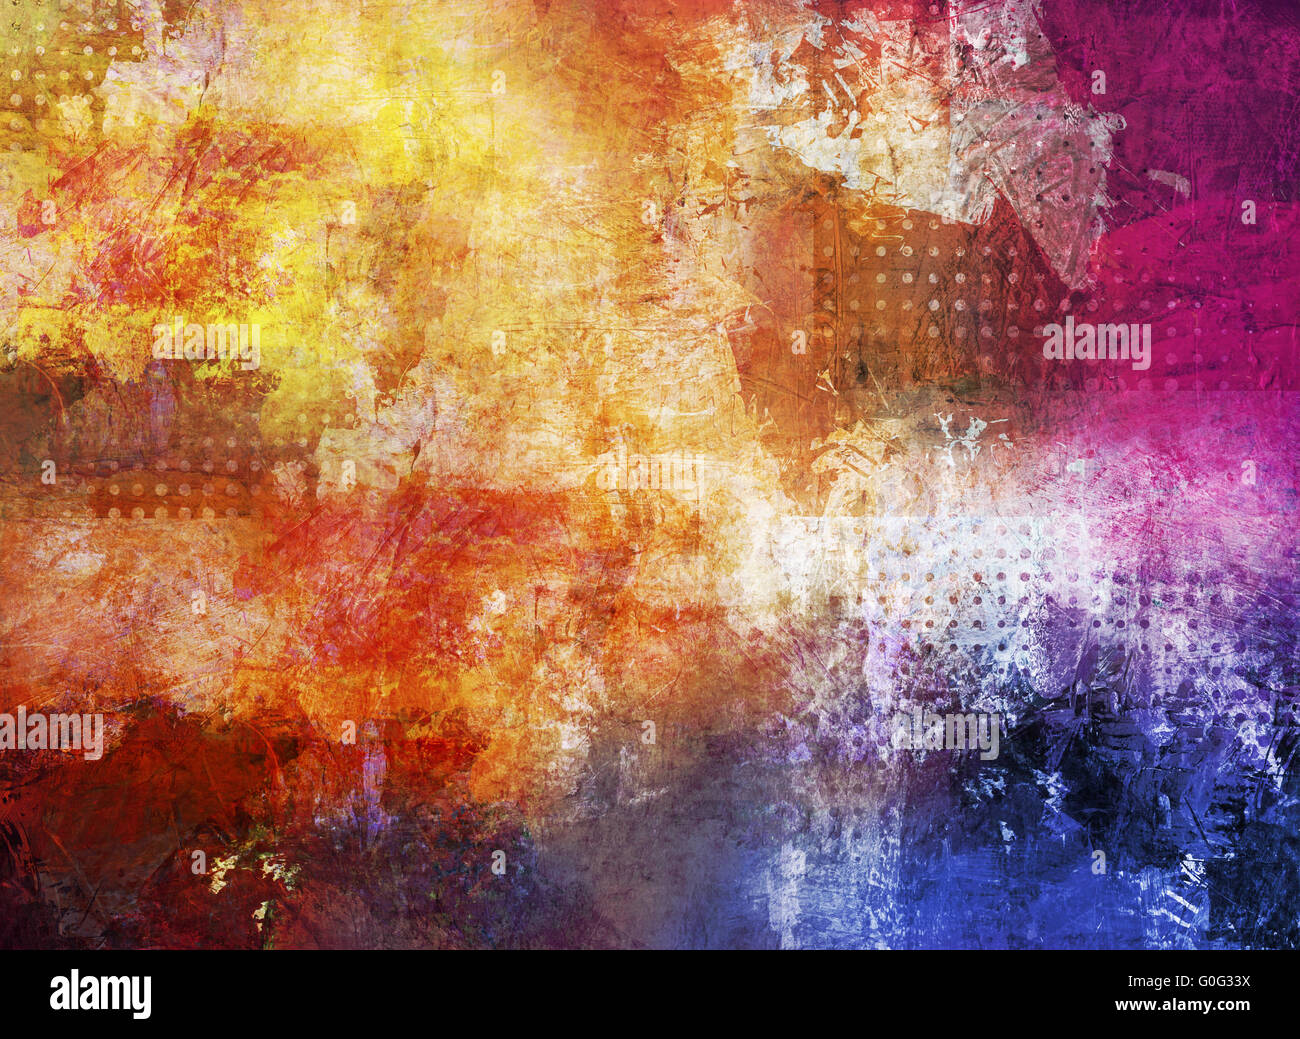 abstract colorful textures - Stock Image